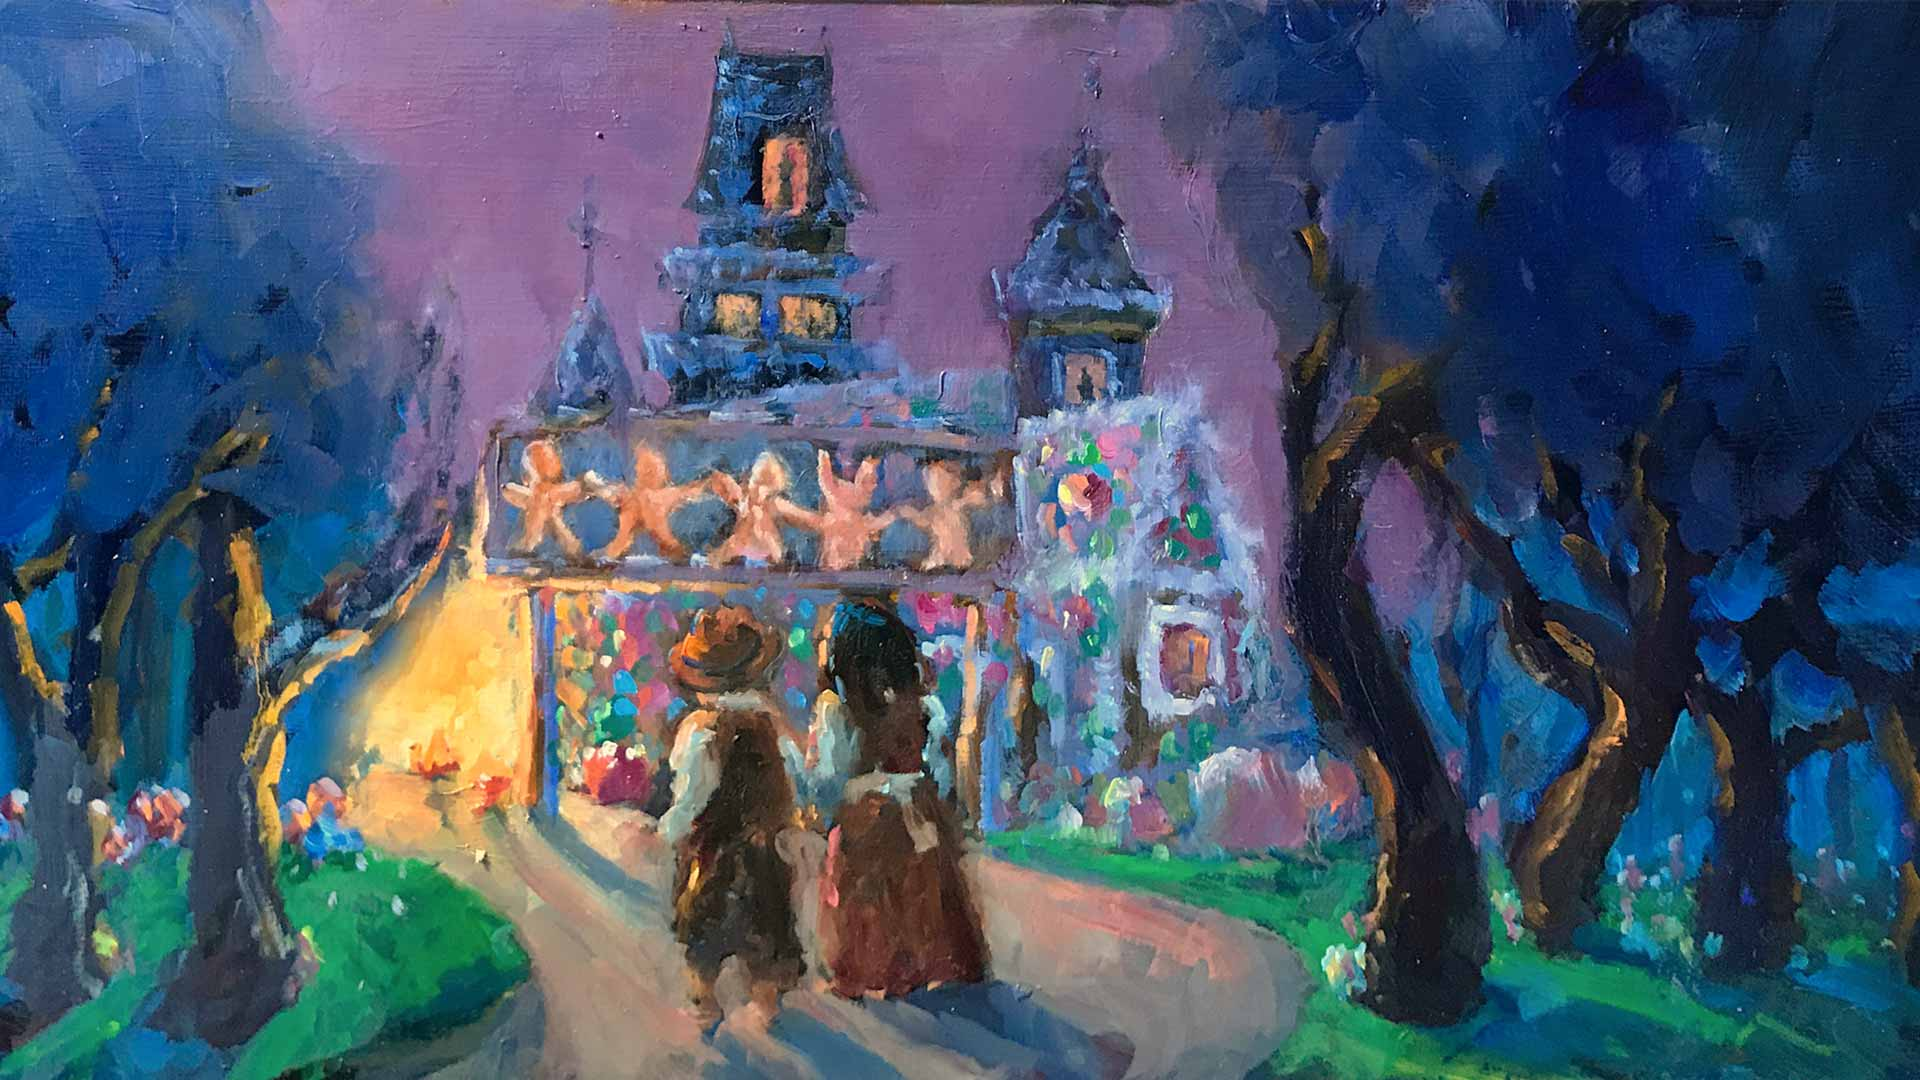 oil painting of boy and girl on a dark forest path looking towarda house glowing with firelight and covered in candy.